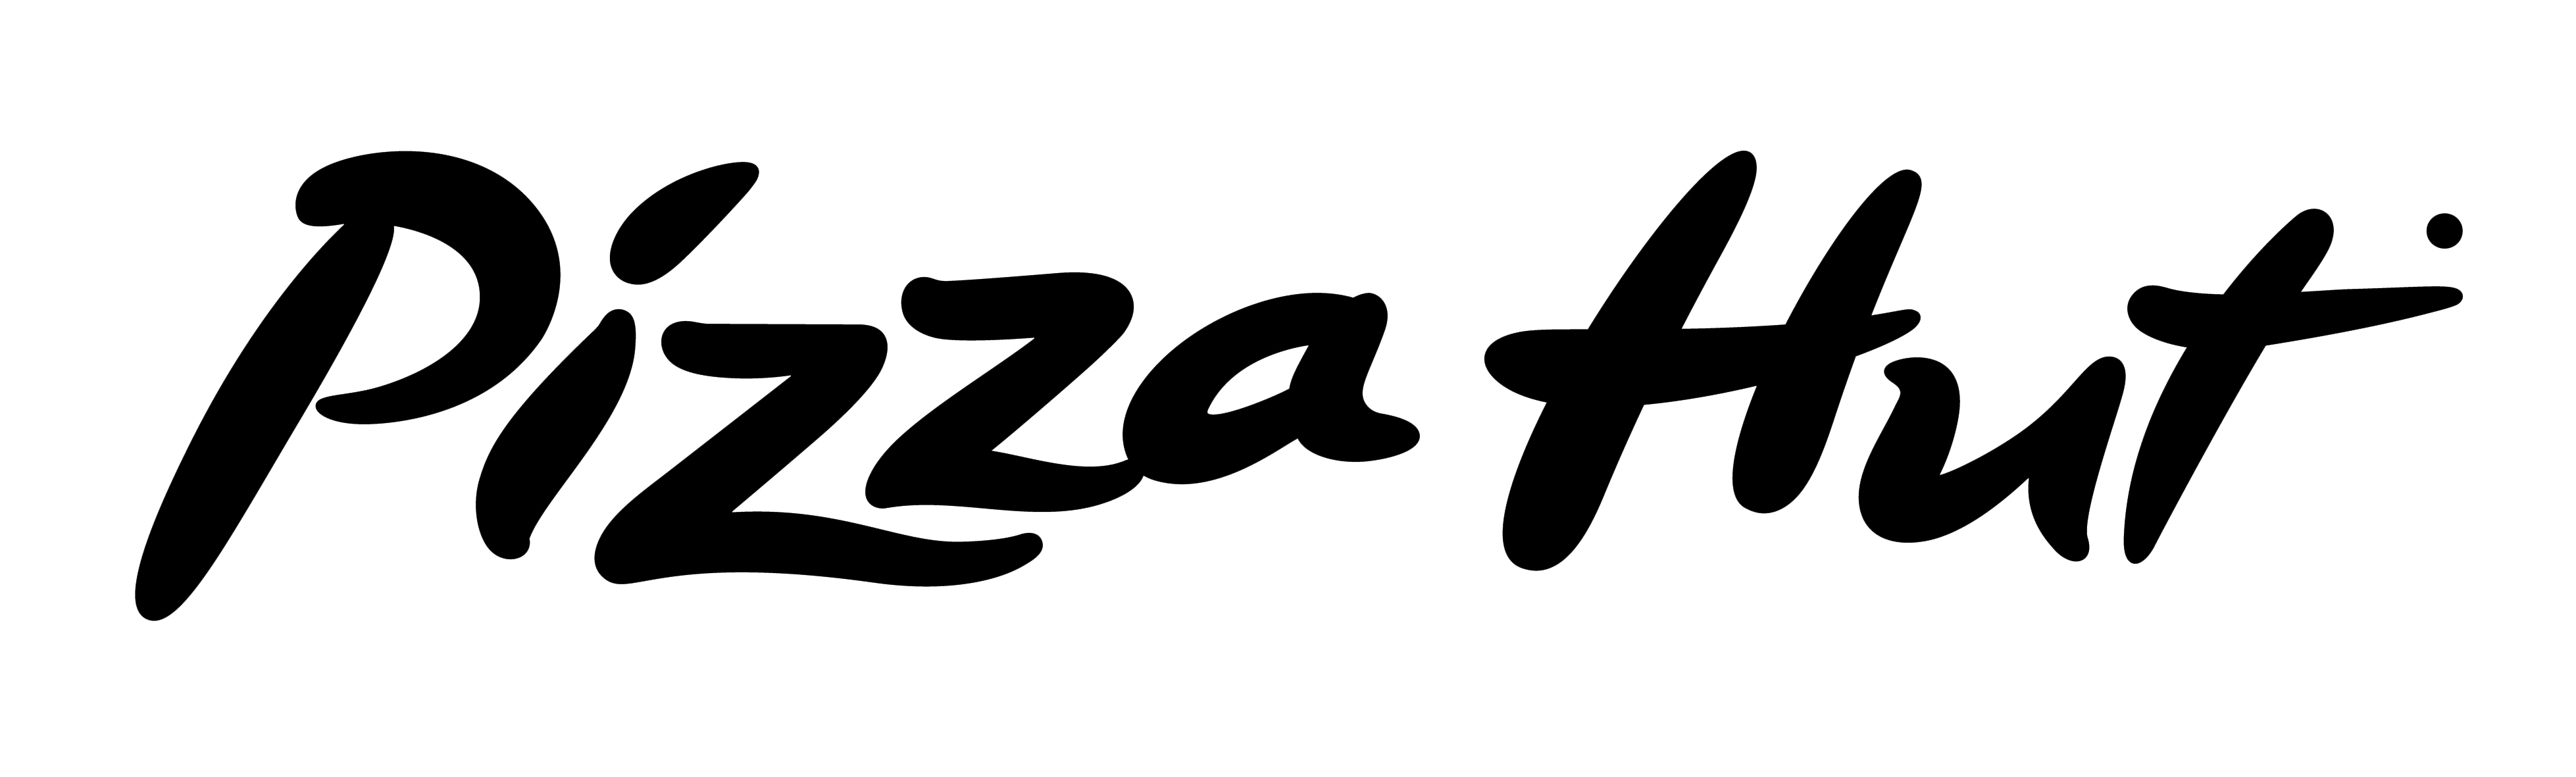 Pizza Hut is an American restaurant chain and international franchise founded in by Dan and Frank unatleimag.tk company is known for its Italian-American cuisine menu, including pizza and pasta, as well as side dishes and desserts. Pizza Hut has 16, restaurants worldwide as of March , making it the world's largest pizza chain in terms of locations.